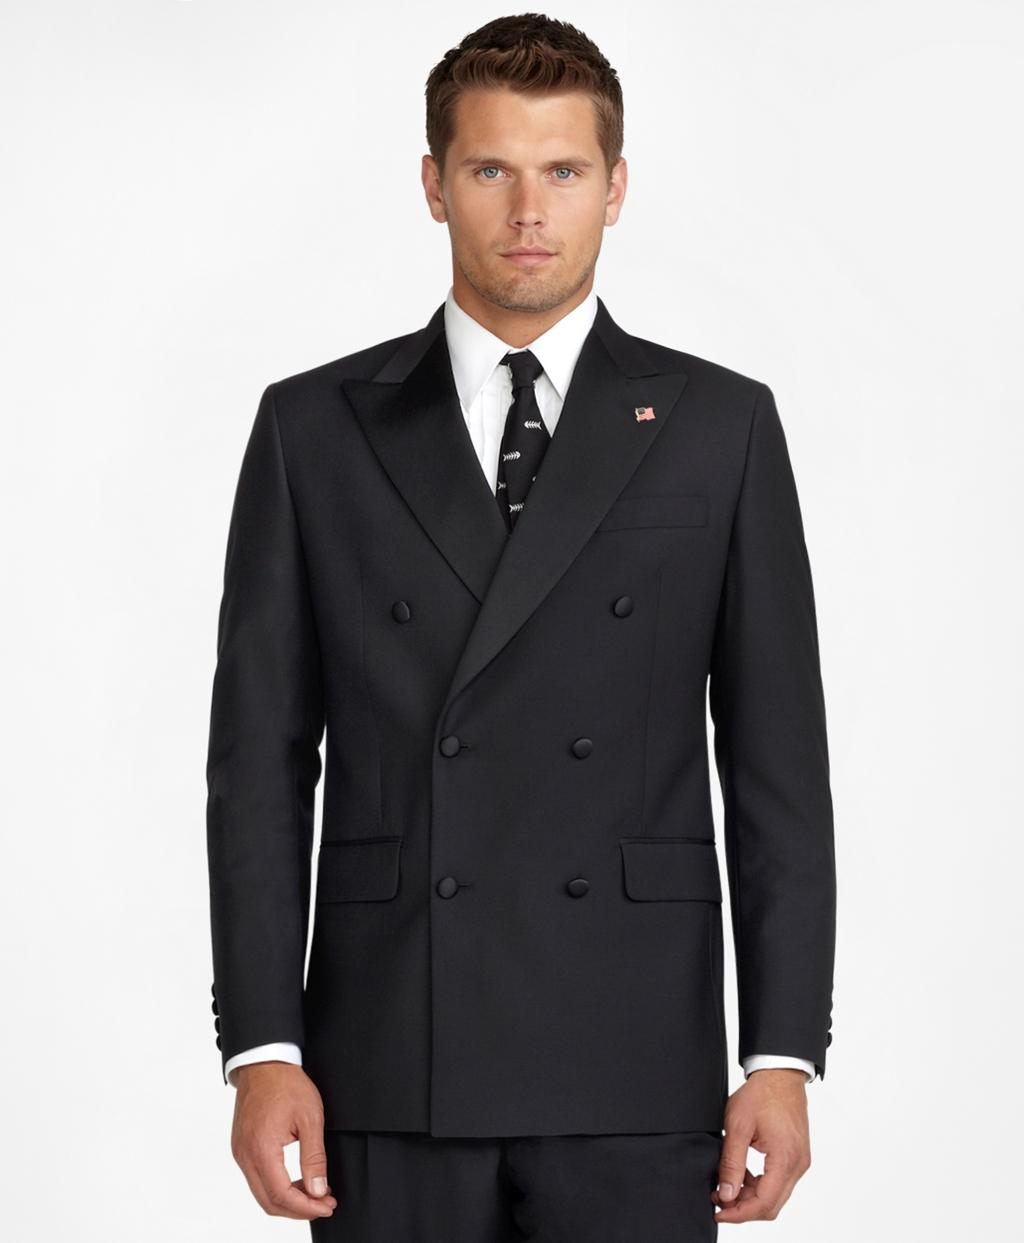 Double Breasted Suit Tom Ford Dress Yy